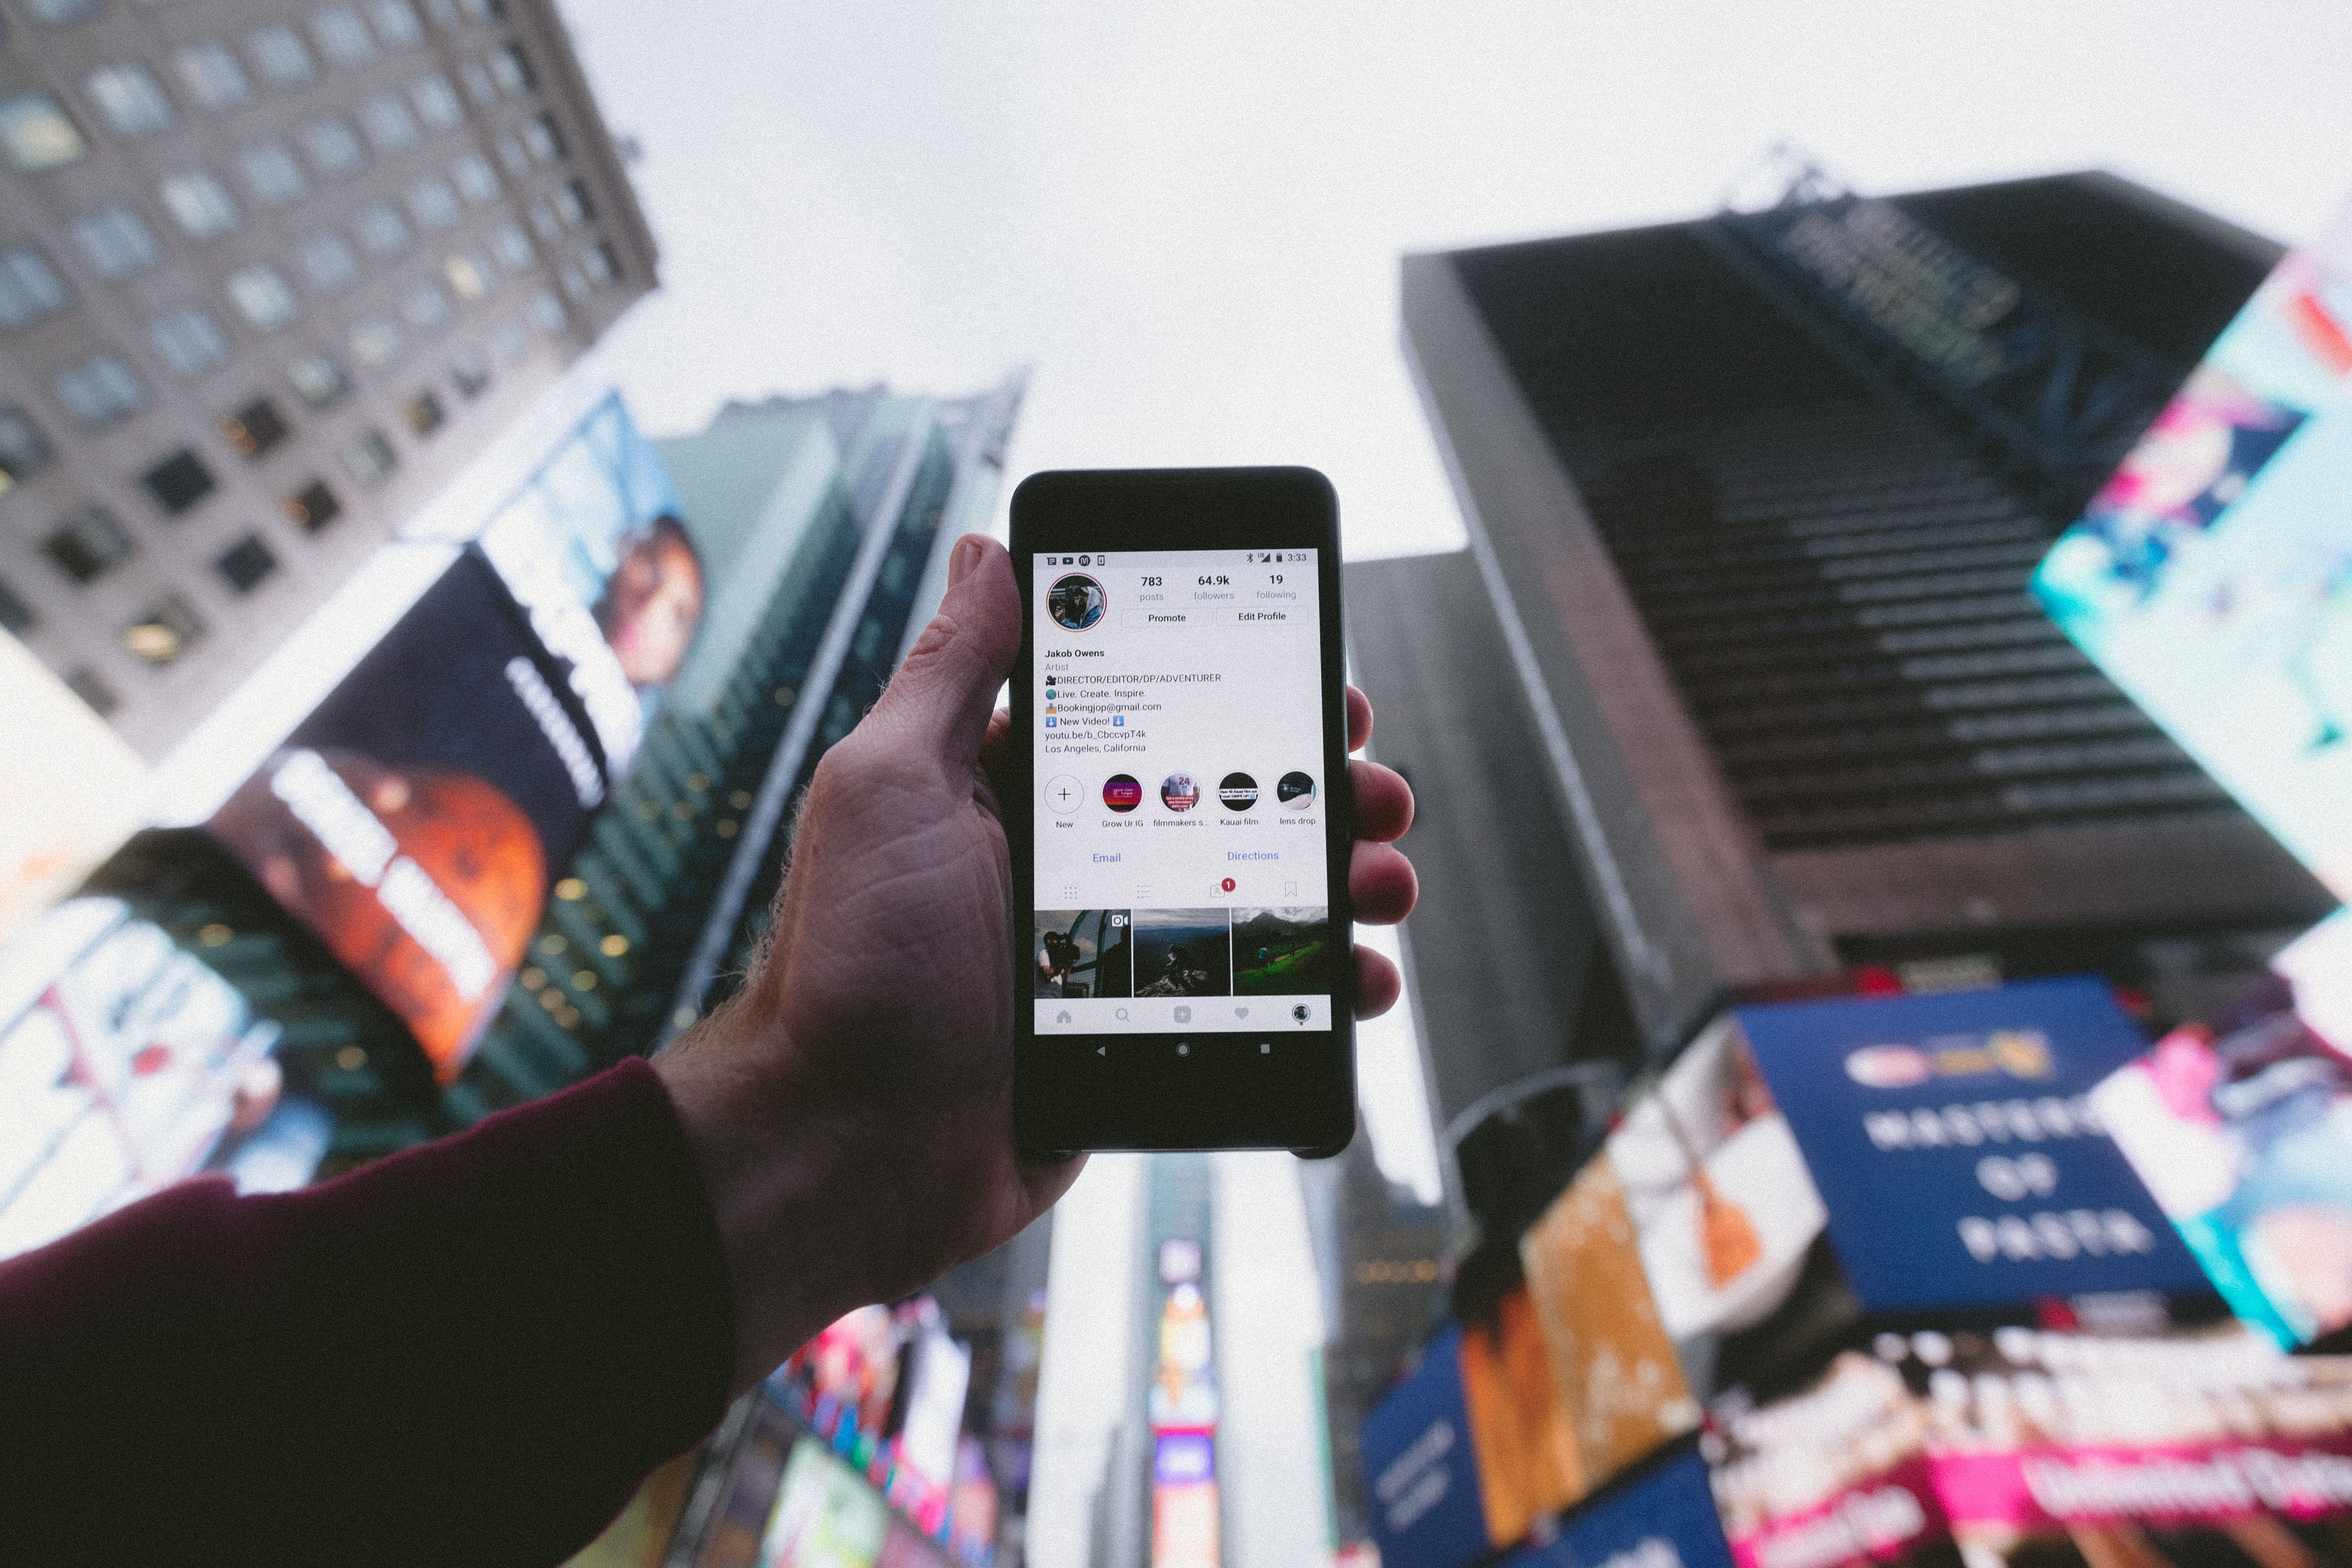 phone with Instagram open held up against skyscrapers in the background